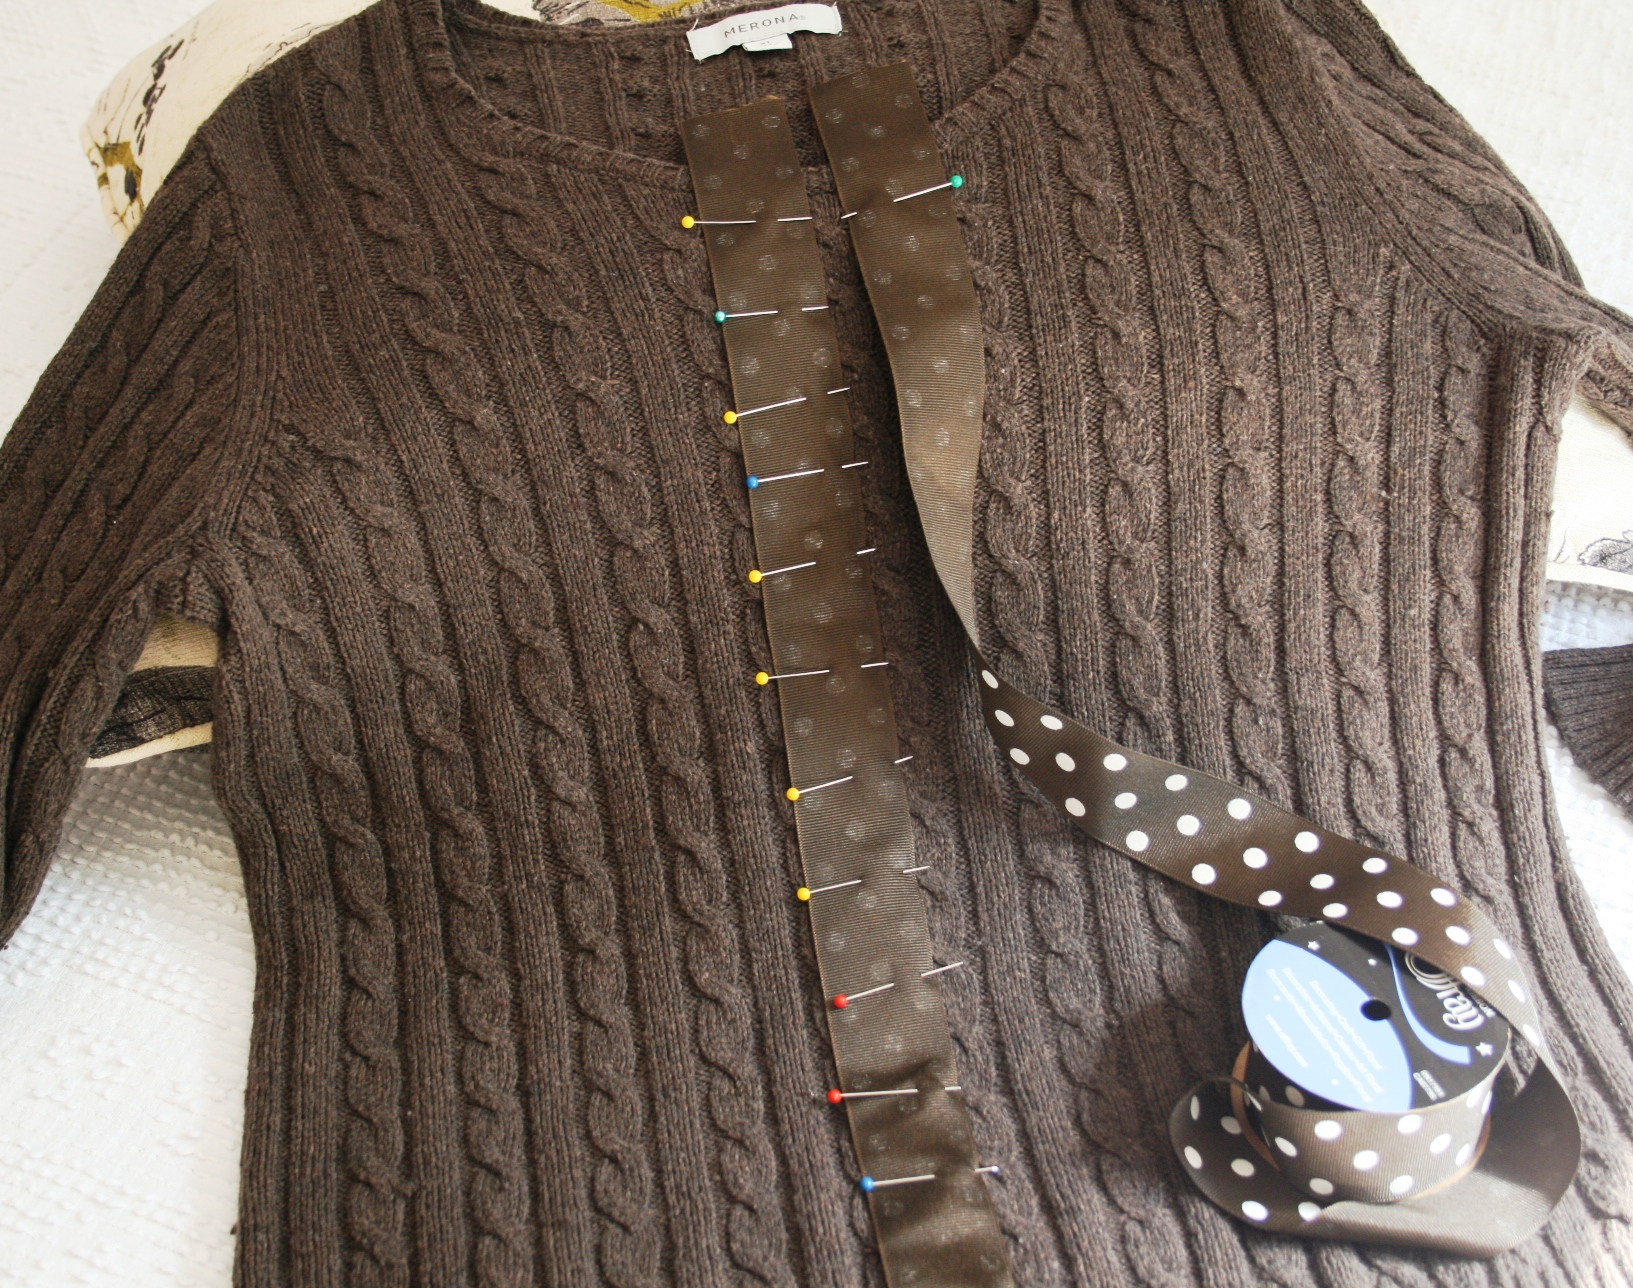 Sewing and Crafts : Old Sweater To New Cardigan | Chic Tweaks ...